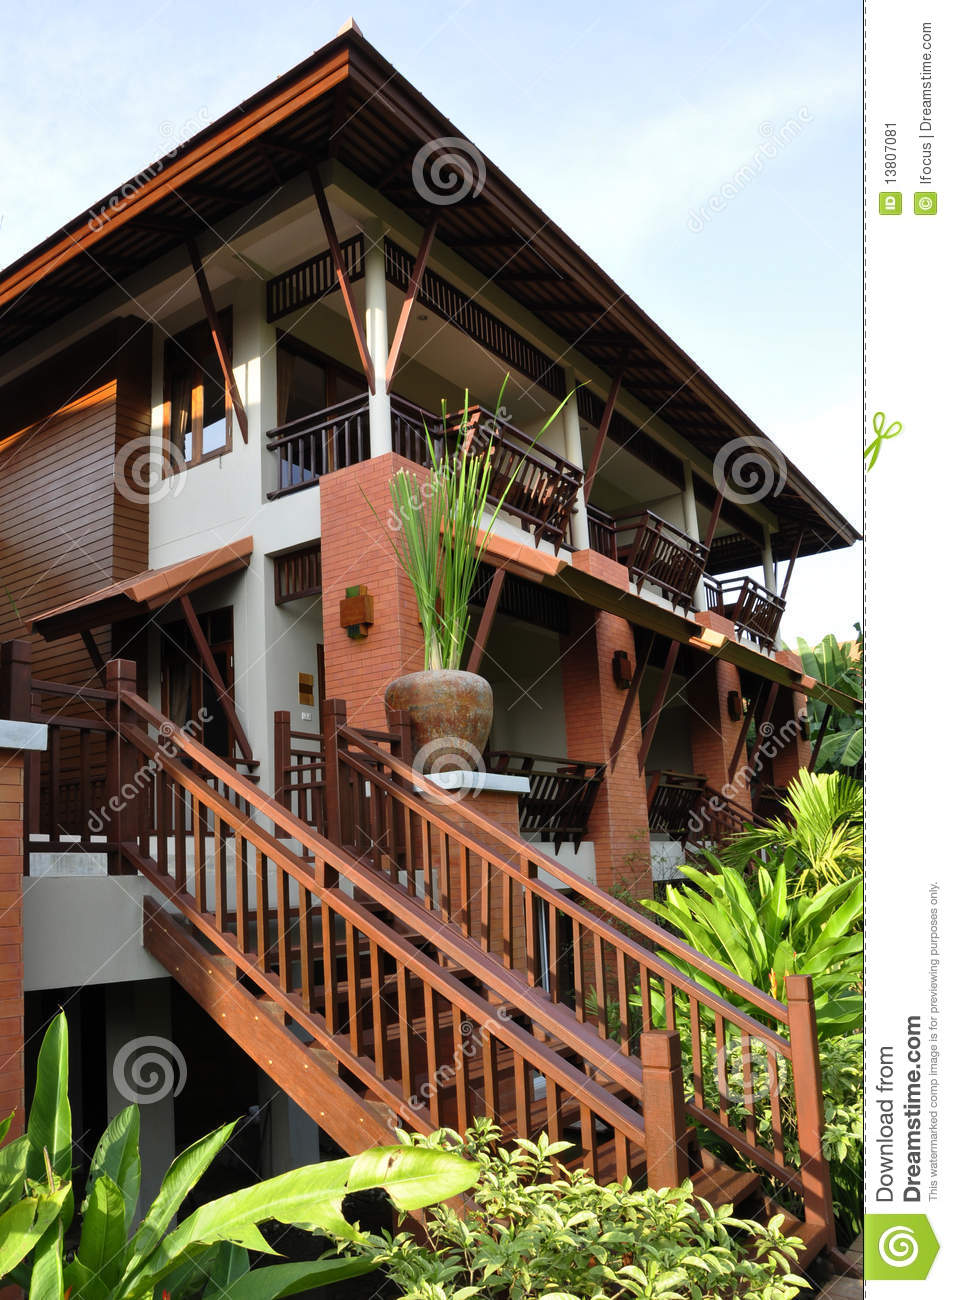 Modern thai house amongst vegetation stock image image for Thai modern house style